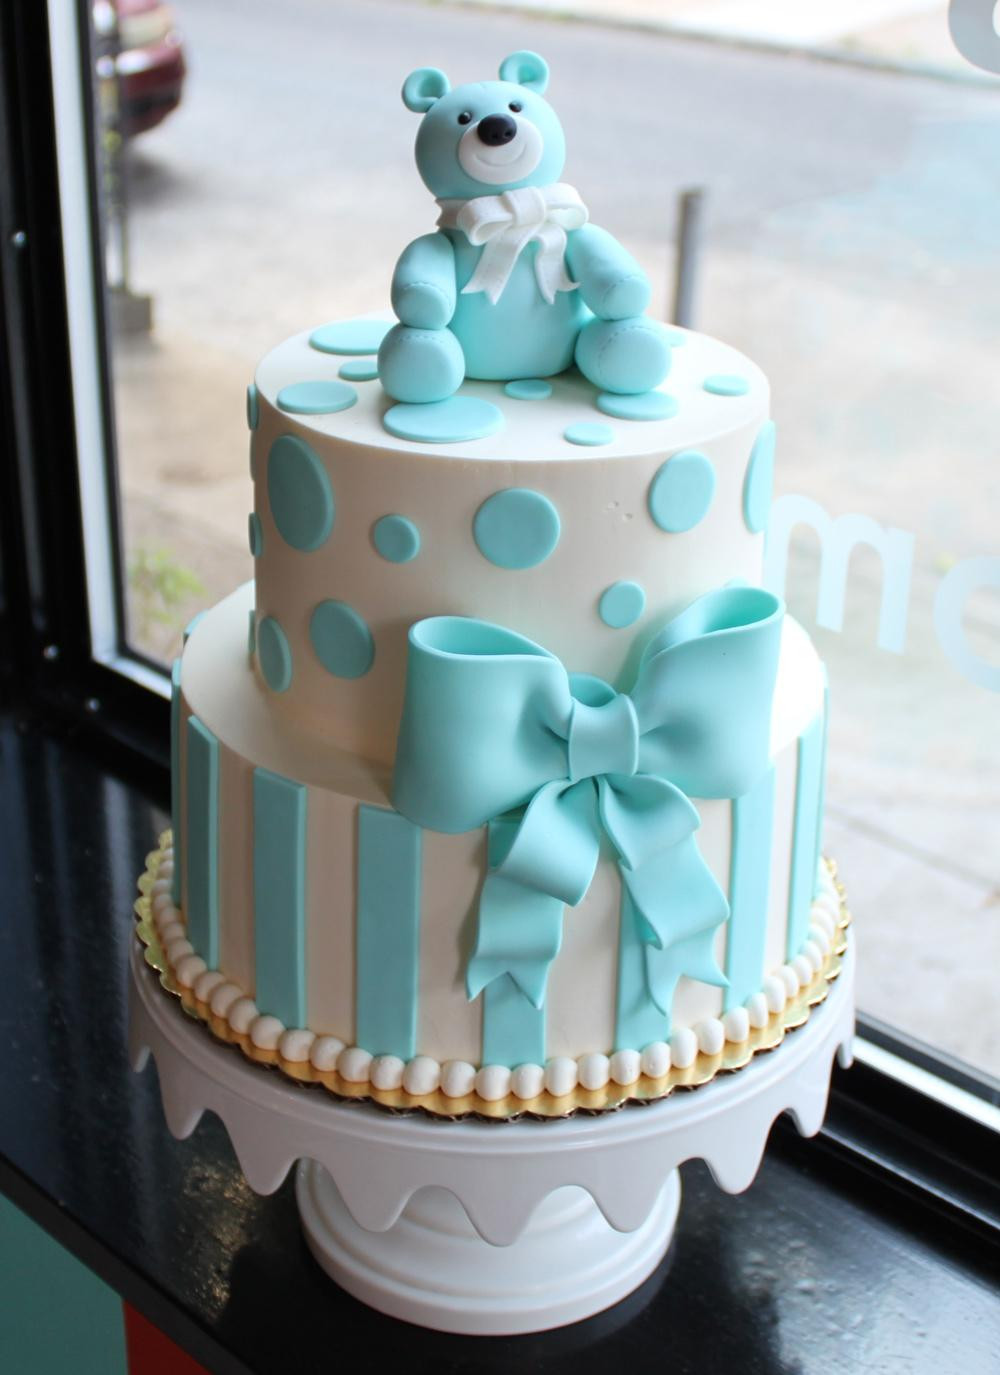 Baby Shower Cake Recipe  Baby Shower Cakes with Delicious Recipe